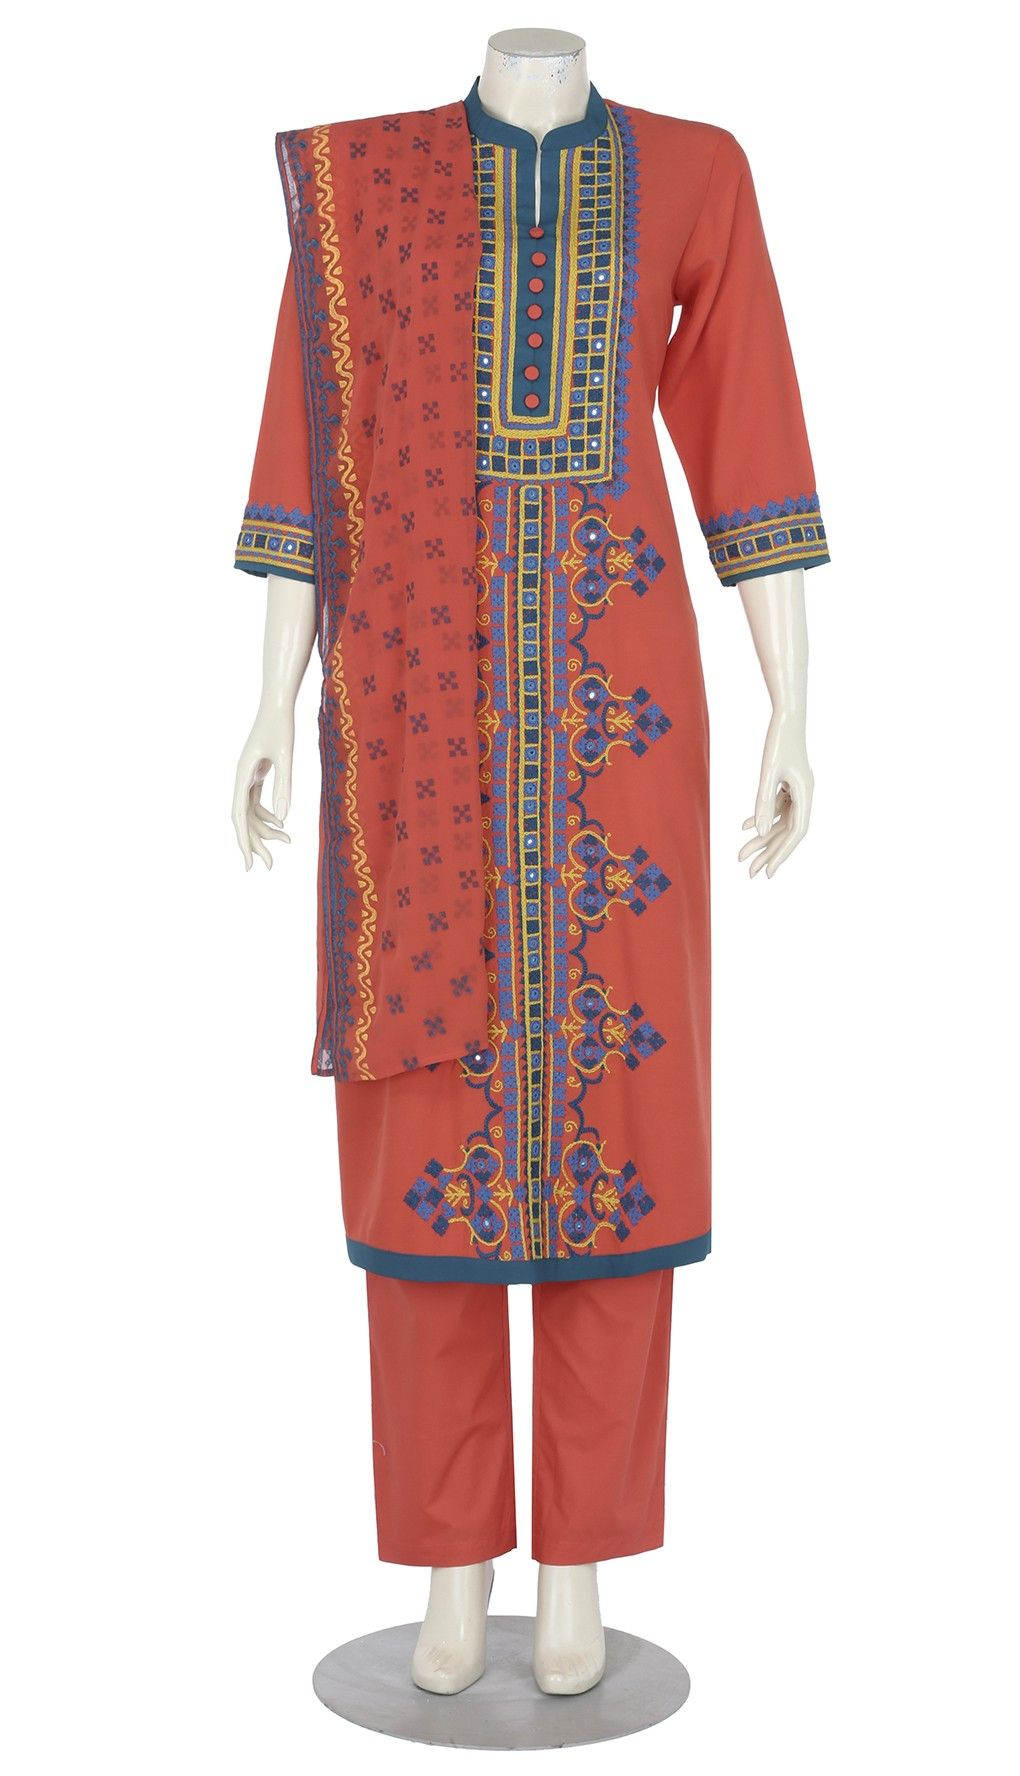 Coral Printed And Embroidered Cashmilon Shalwar Kameez Set Coral Print Shalwar Kameez Shalwar